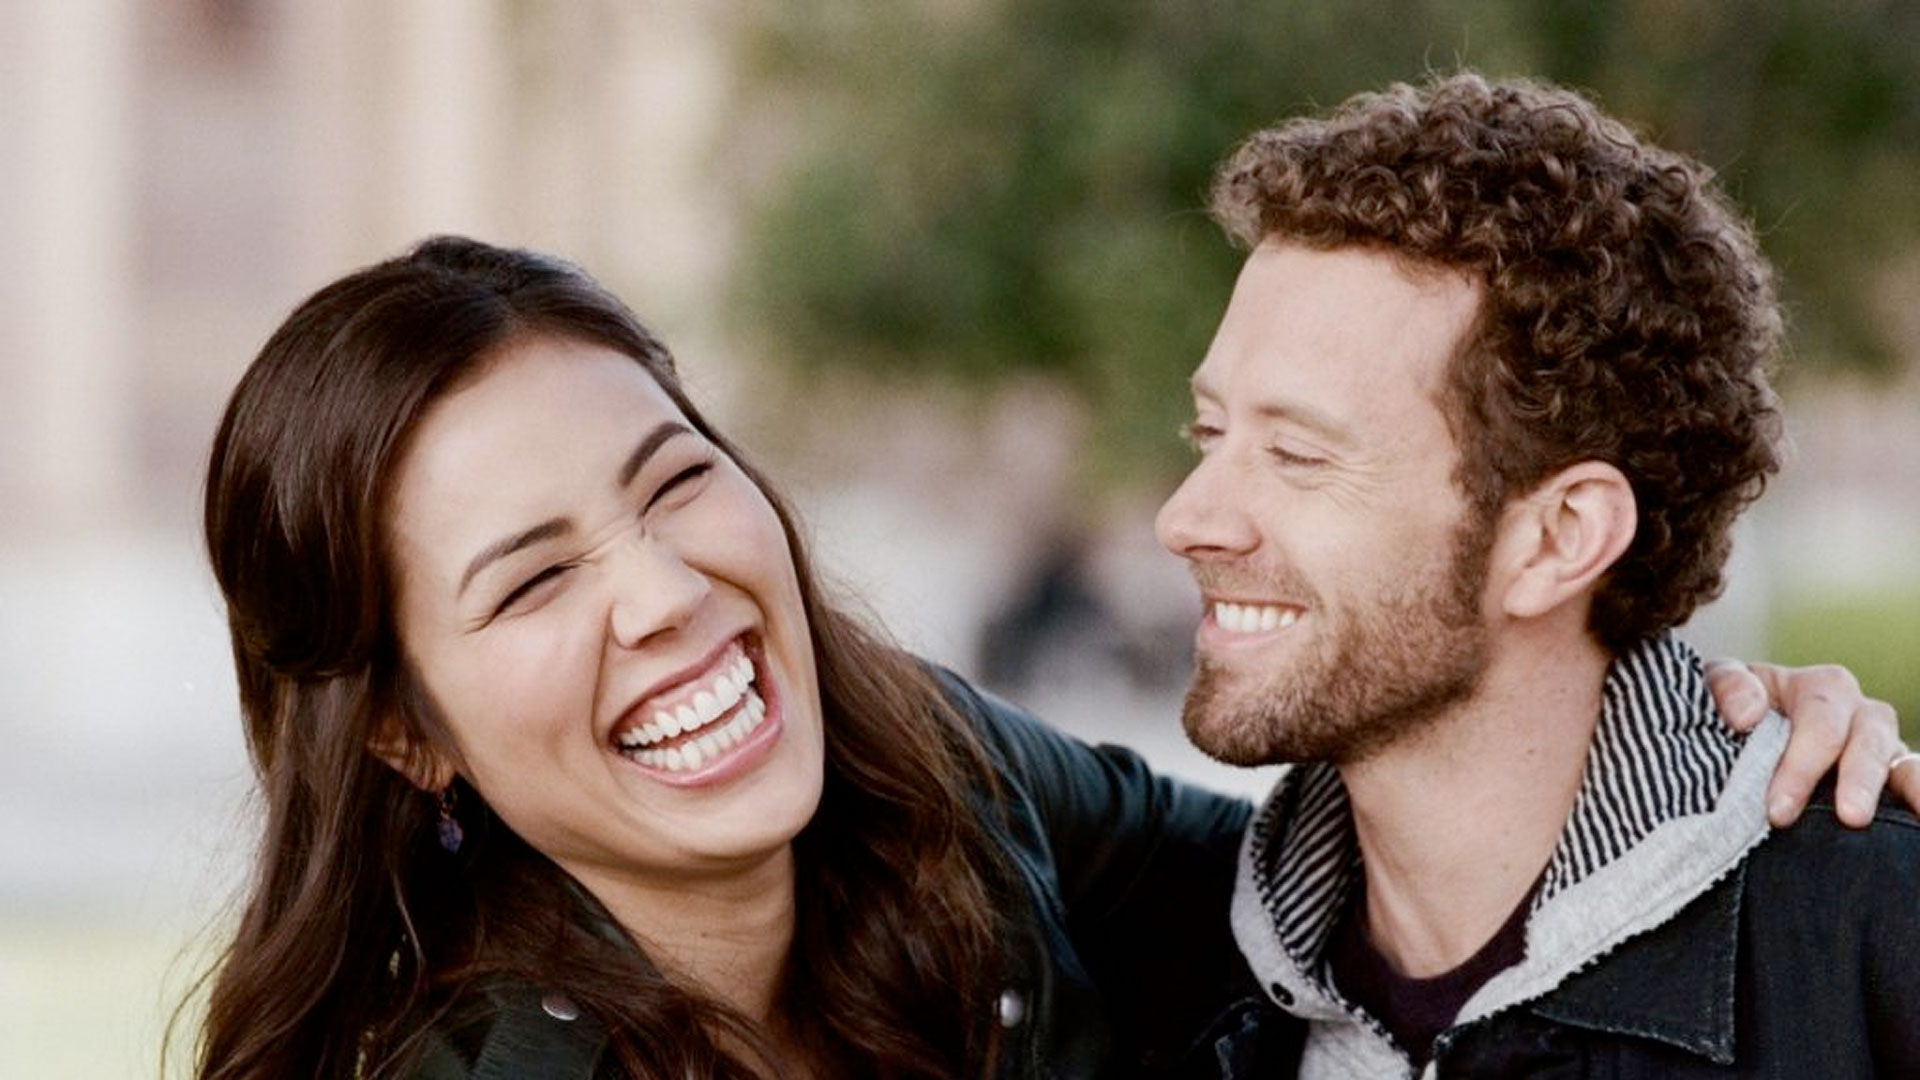 Michaela Conllin and TJ Thyne, laughing together